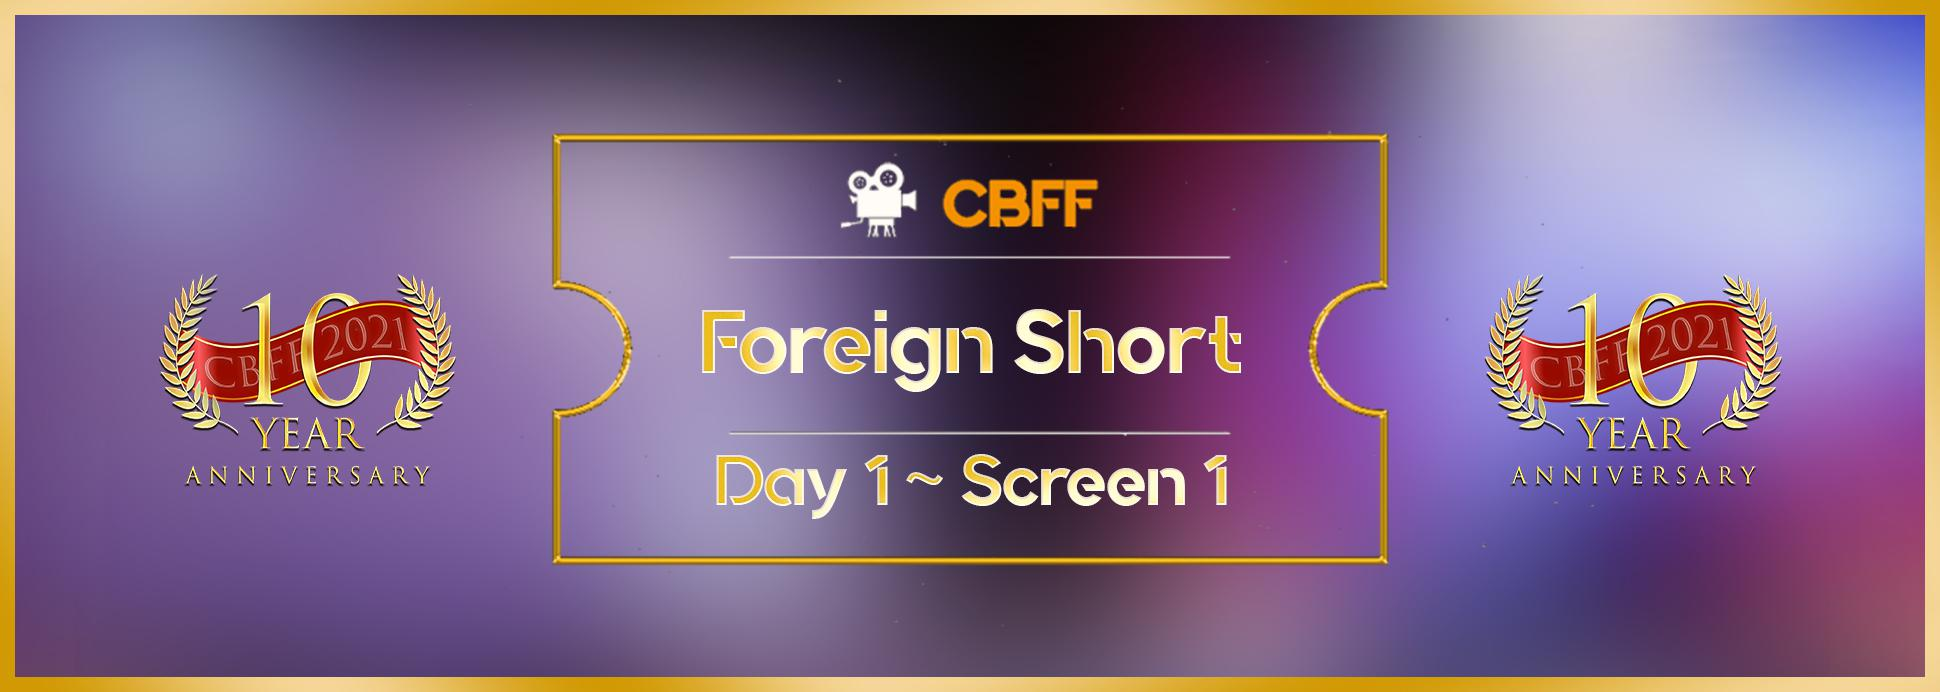 Day 1, Screen 1: Foreign Short